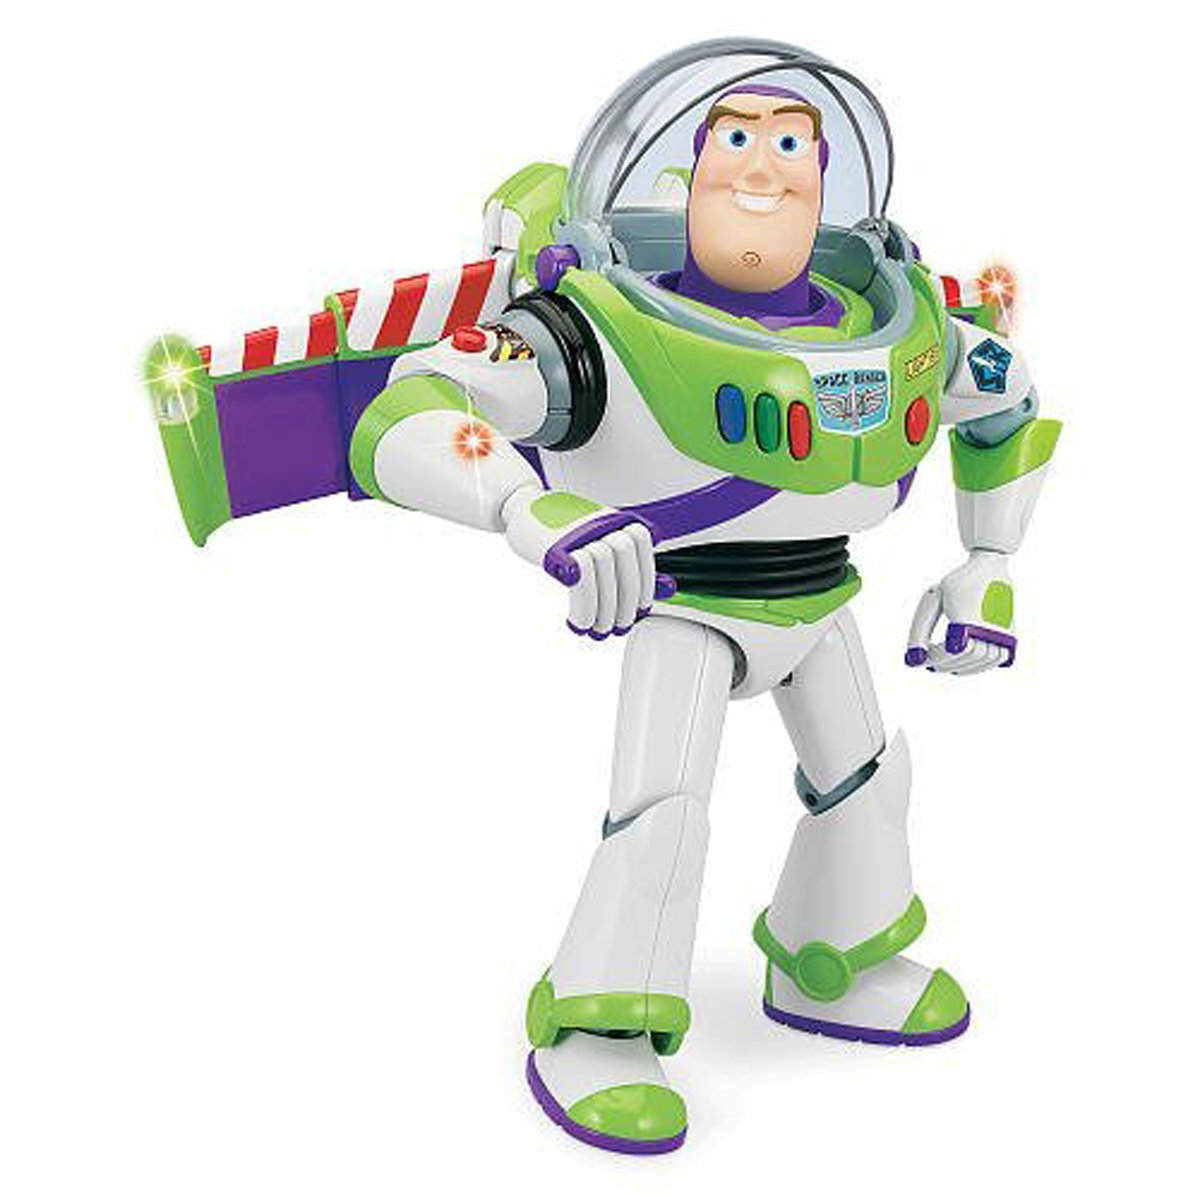 Toy Story Disney Advanced Talking Buzz Lightyear Action Figure 12